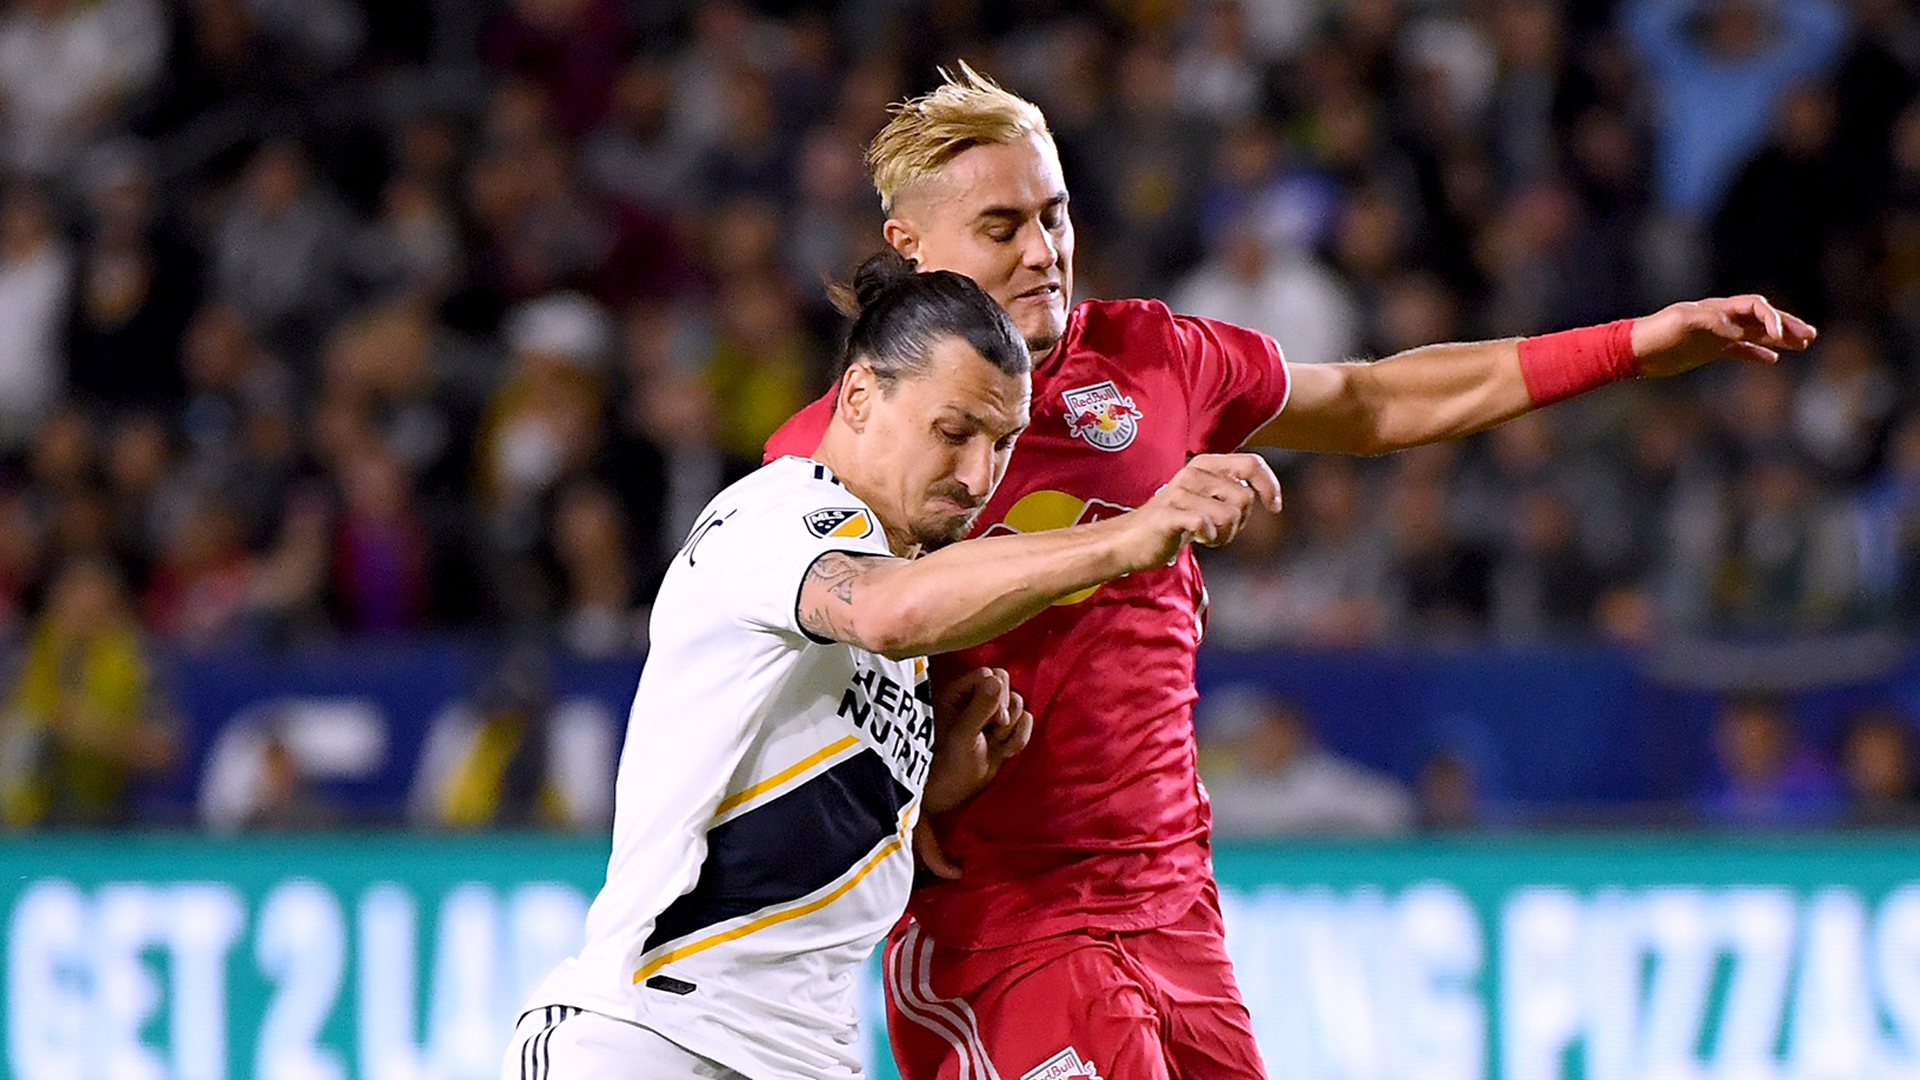 Aaron Long Zlatan Ibrahimovic LA Galaxy NY Red Bulls 2018